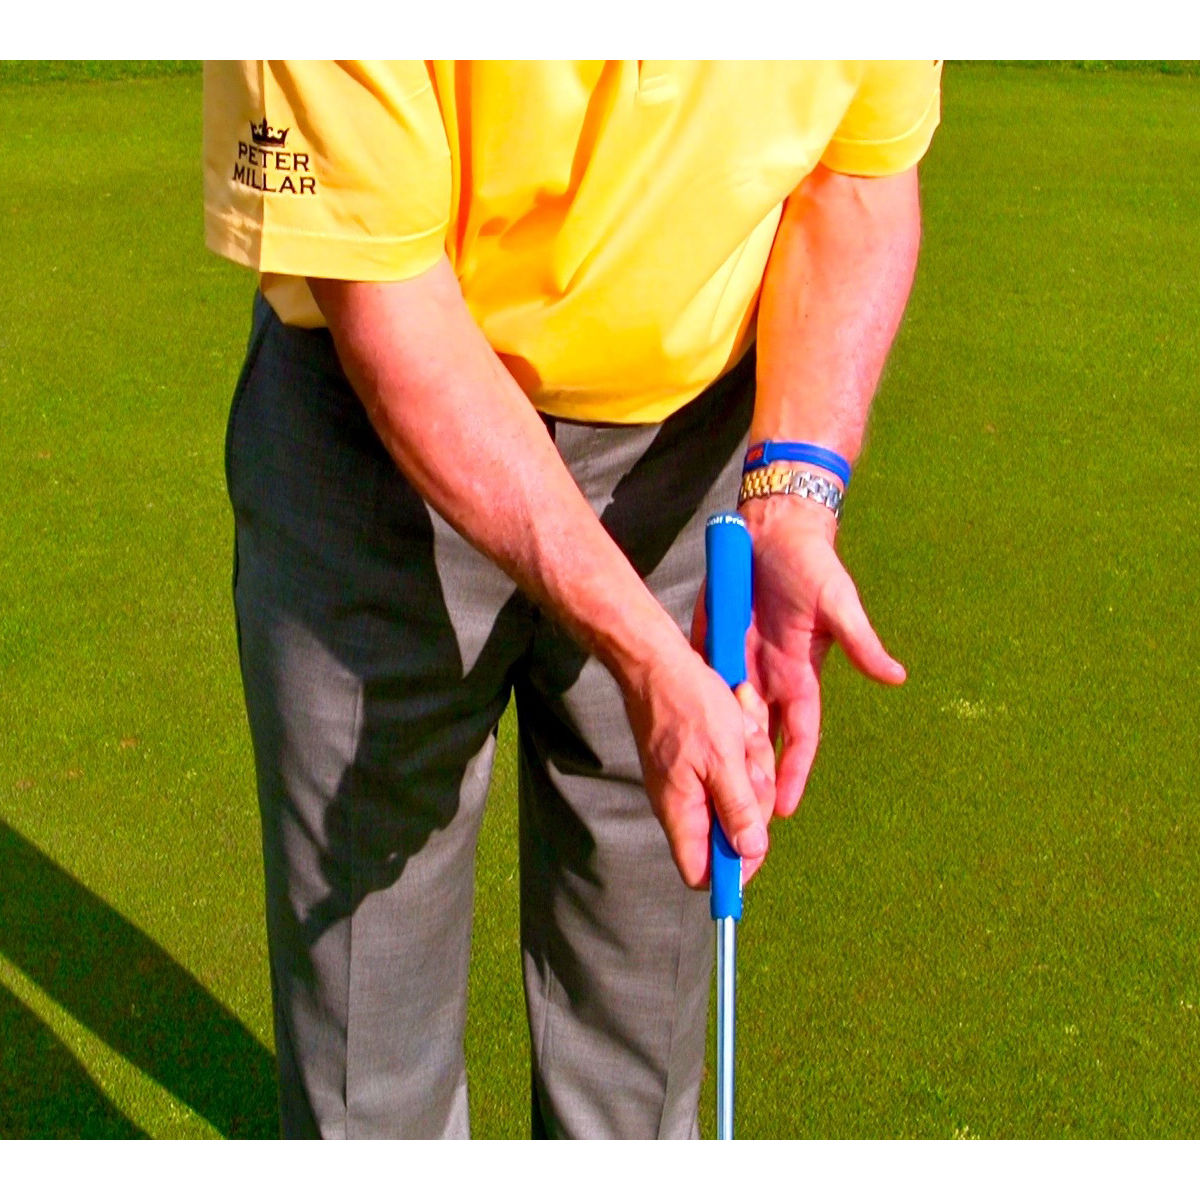 EyeLine Golf - Lifeline Putting Grip